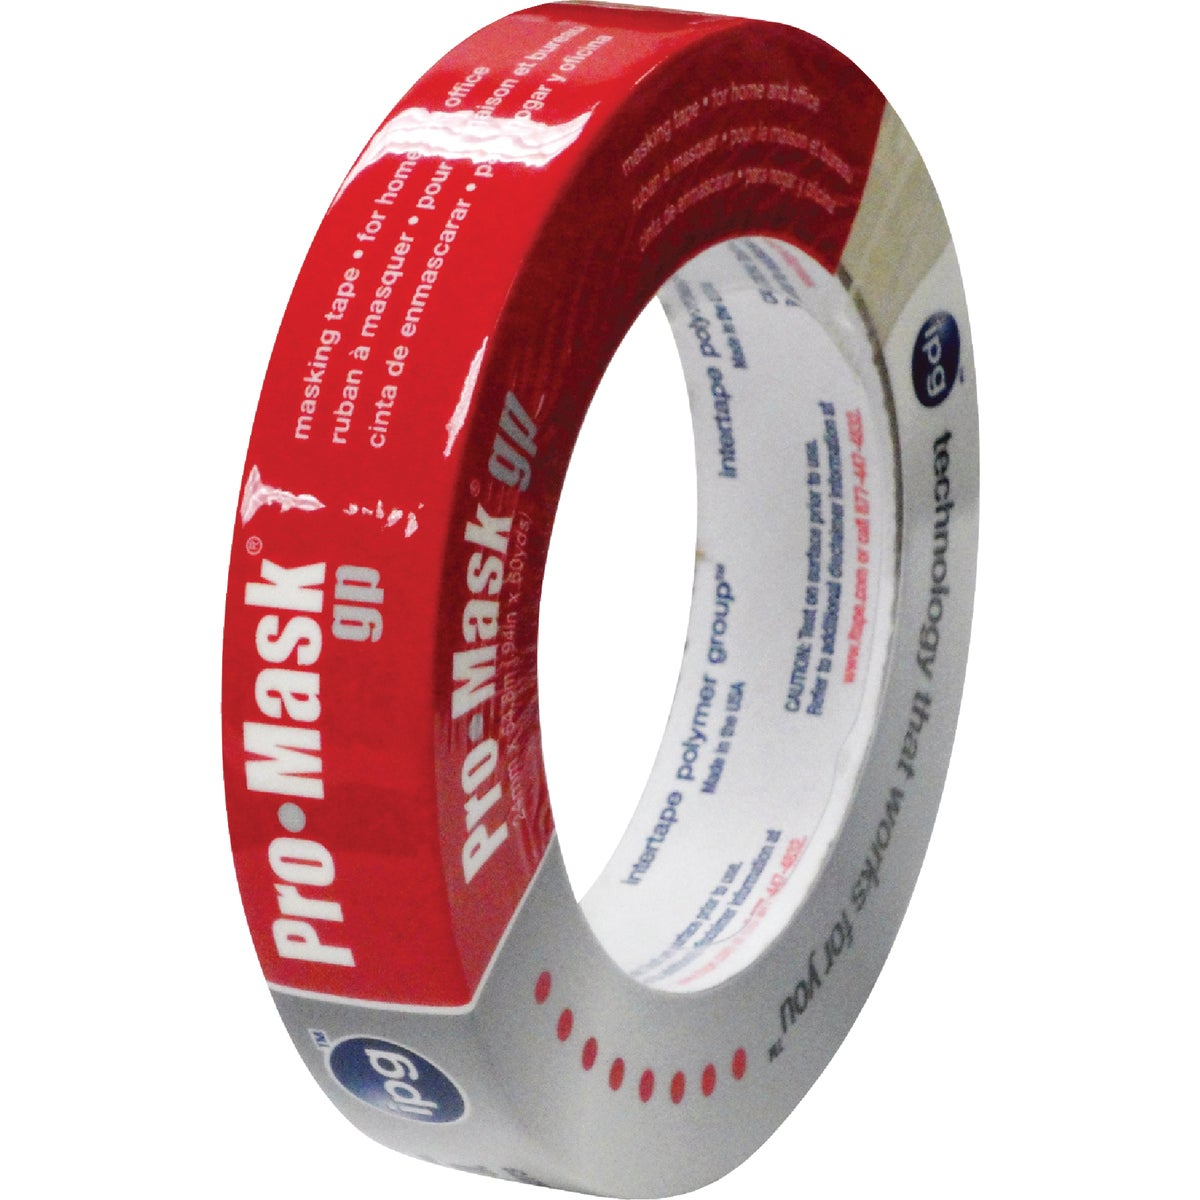 "1"" G/P MASKING TAPE - 5101 by Intertape Polymer"